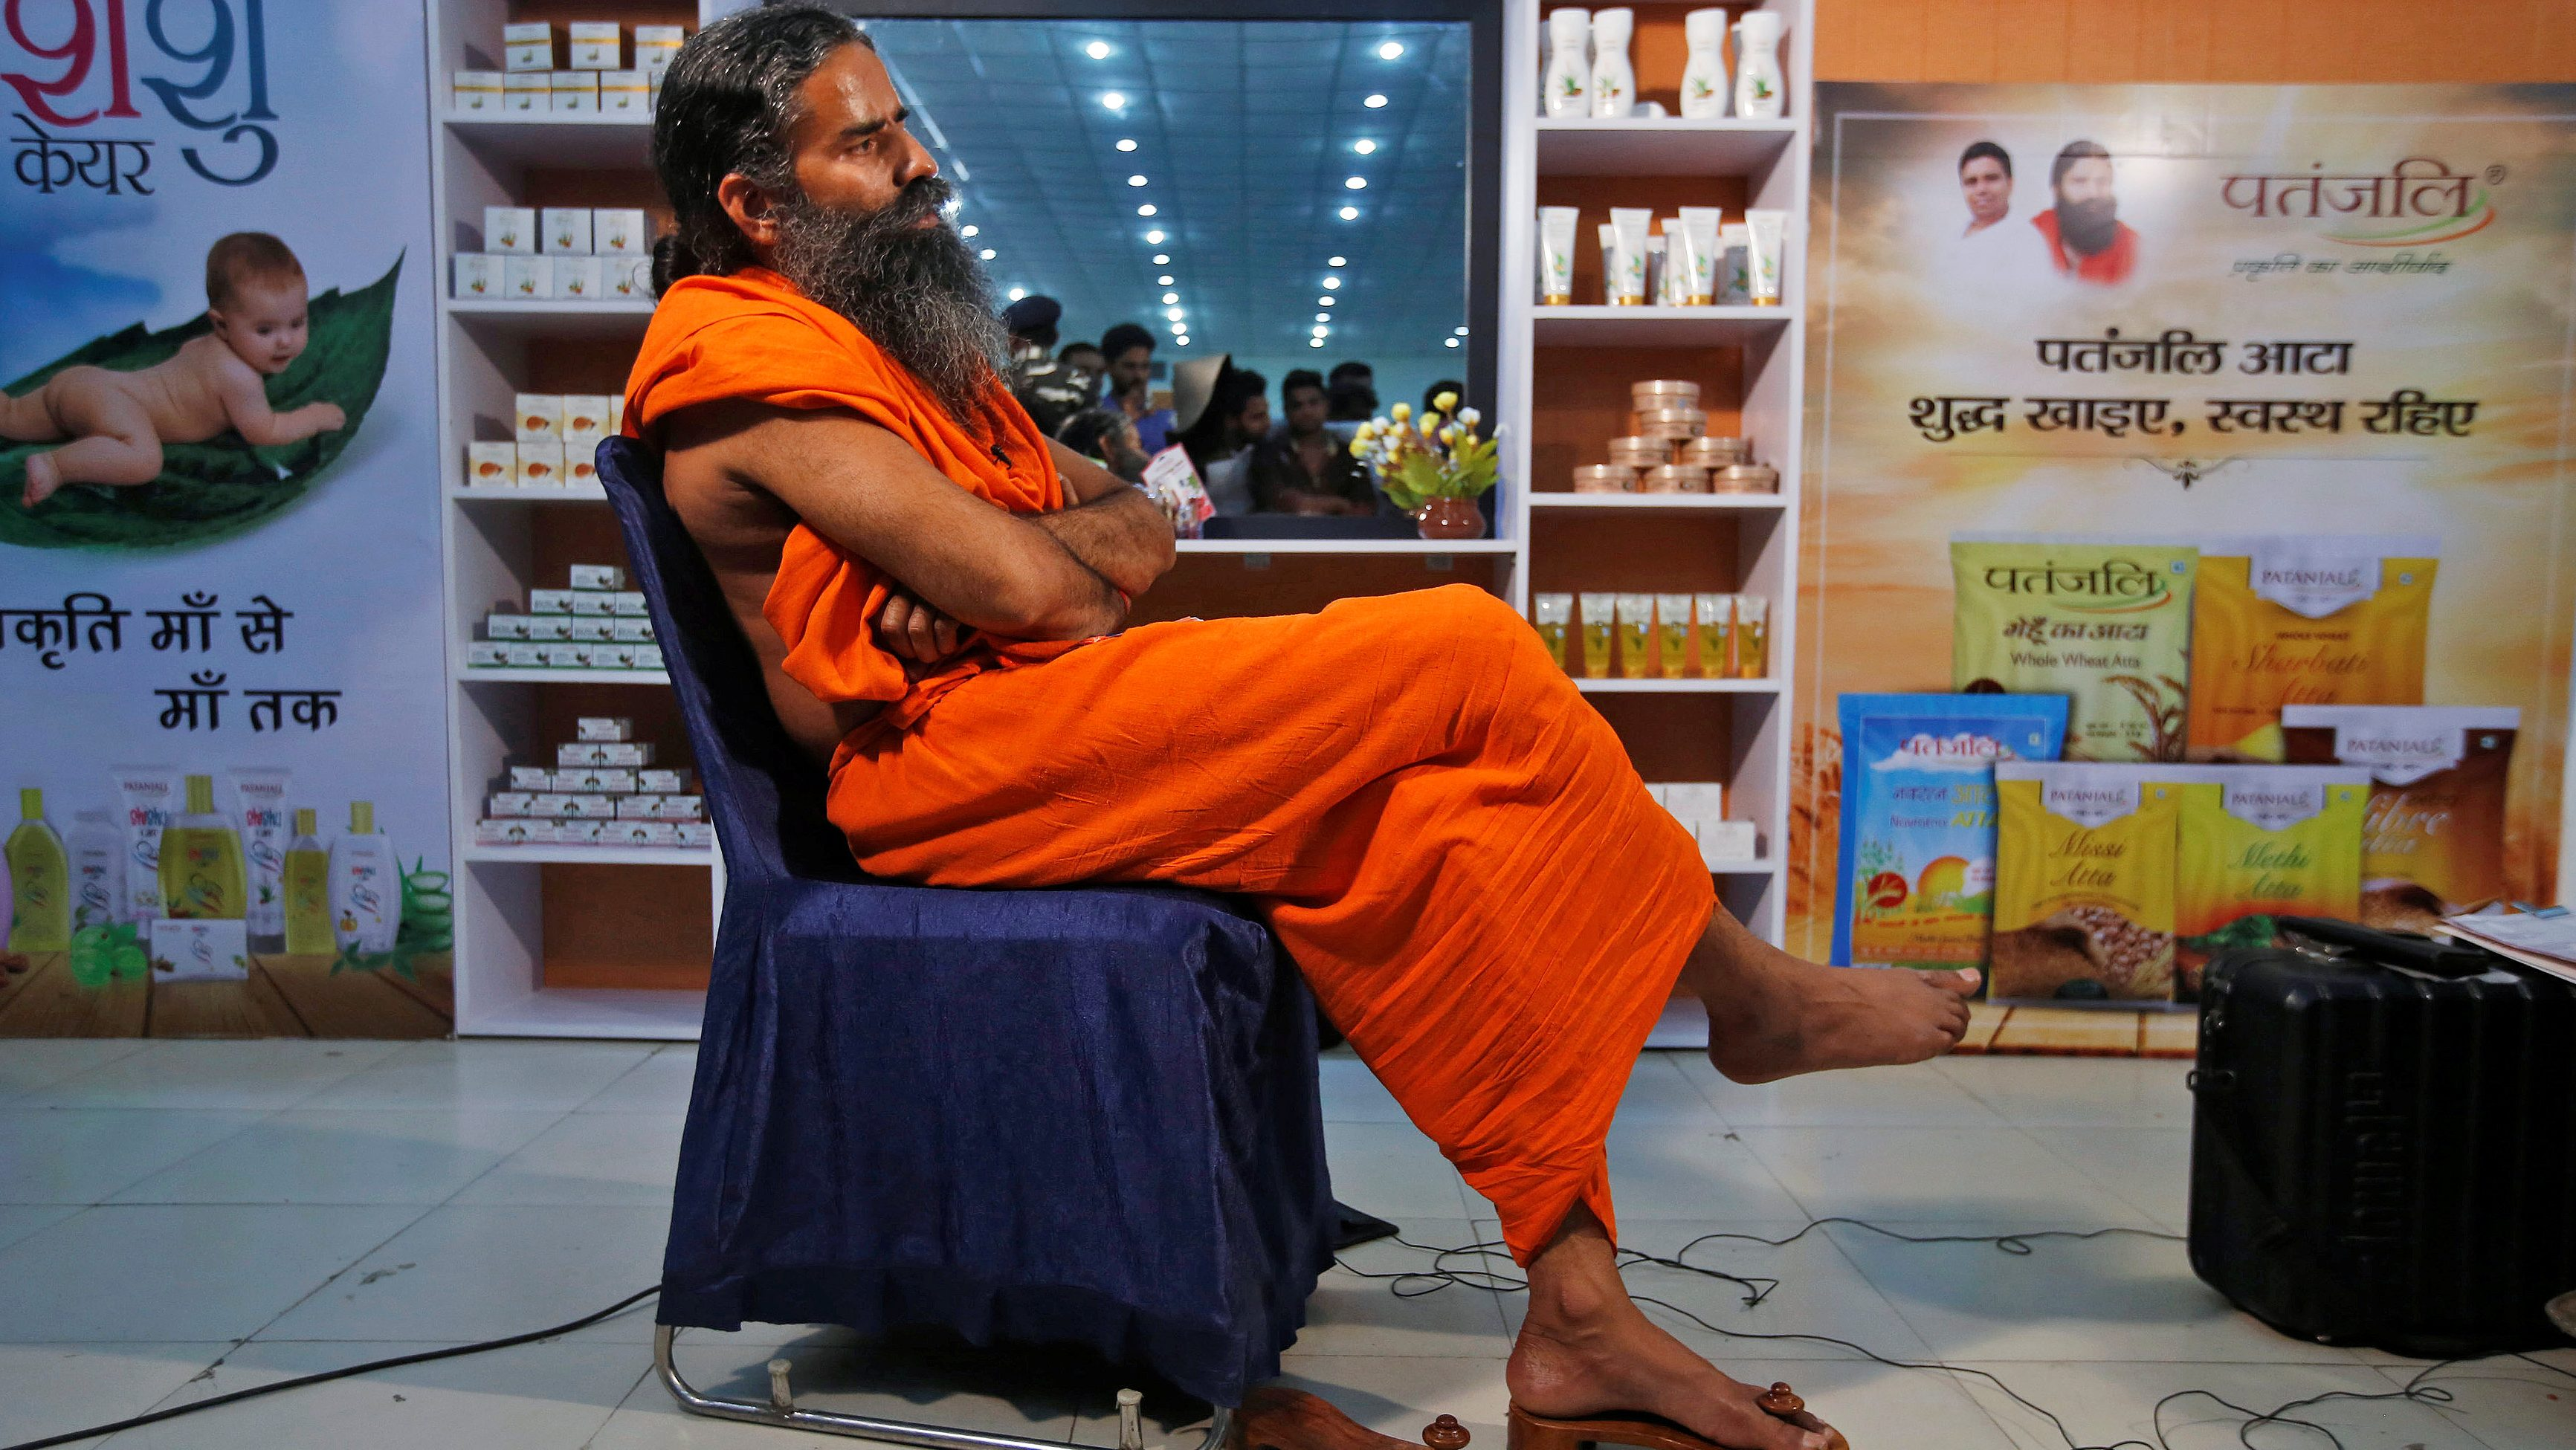 Indian yoga guru Baba Ramdev talks to media after a news conference in New Delhi, India, May 4, 2017. Picture taken on May 4, 2017. To match Special Report INDIA-MODI/RAMDEV      REUTERS/Adnan Abidi - RC1F70791F90